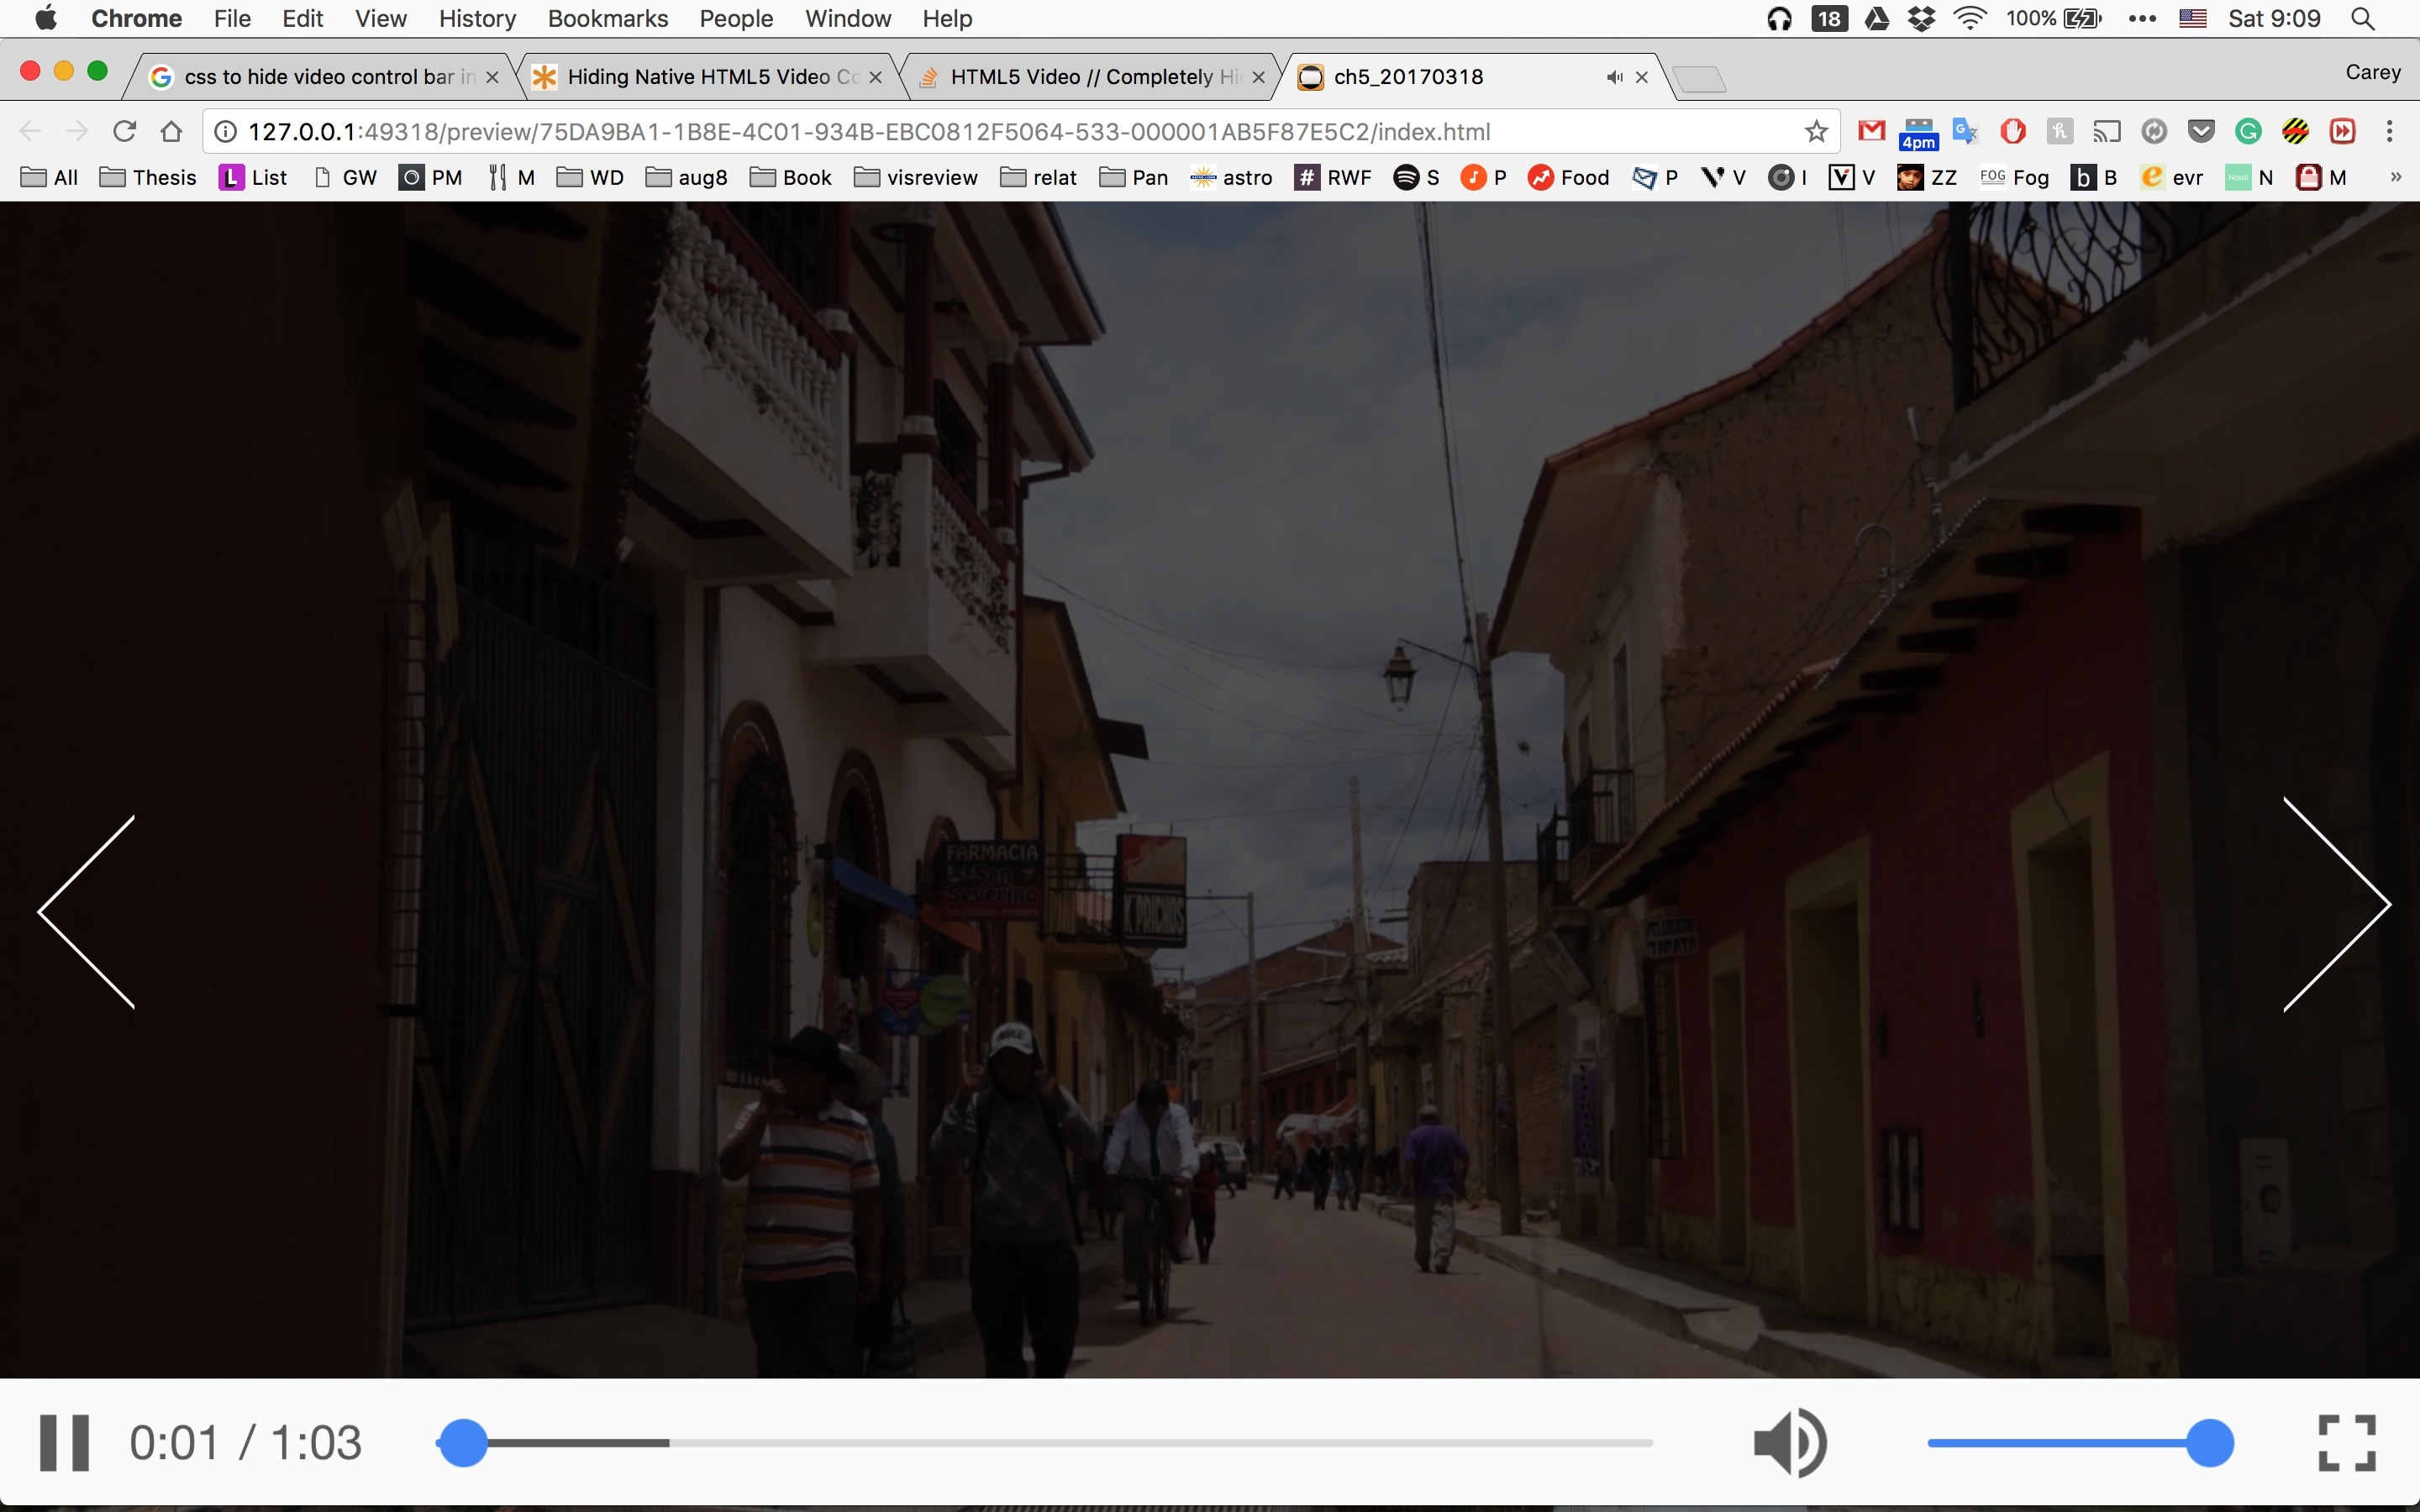 CSS   How to Hide Video Control Bar? - Tumult Forums